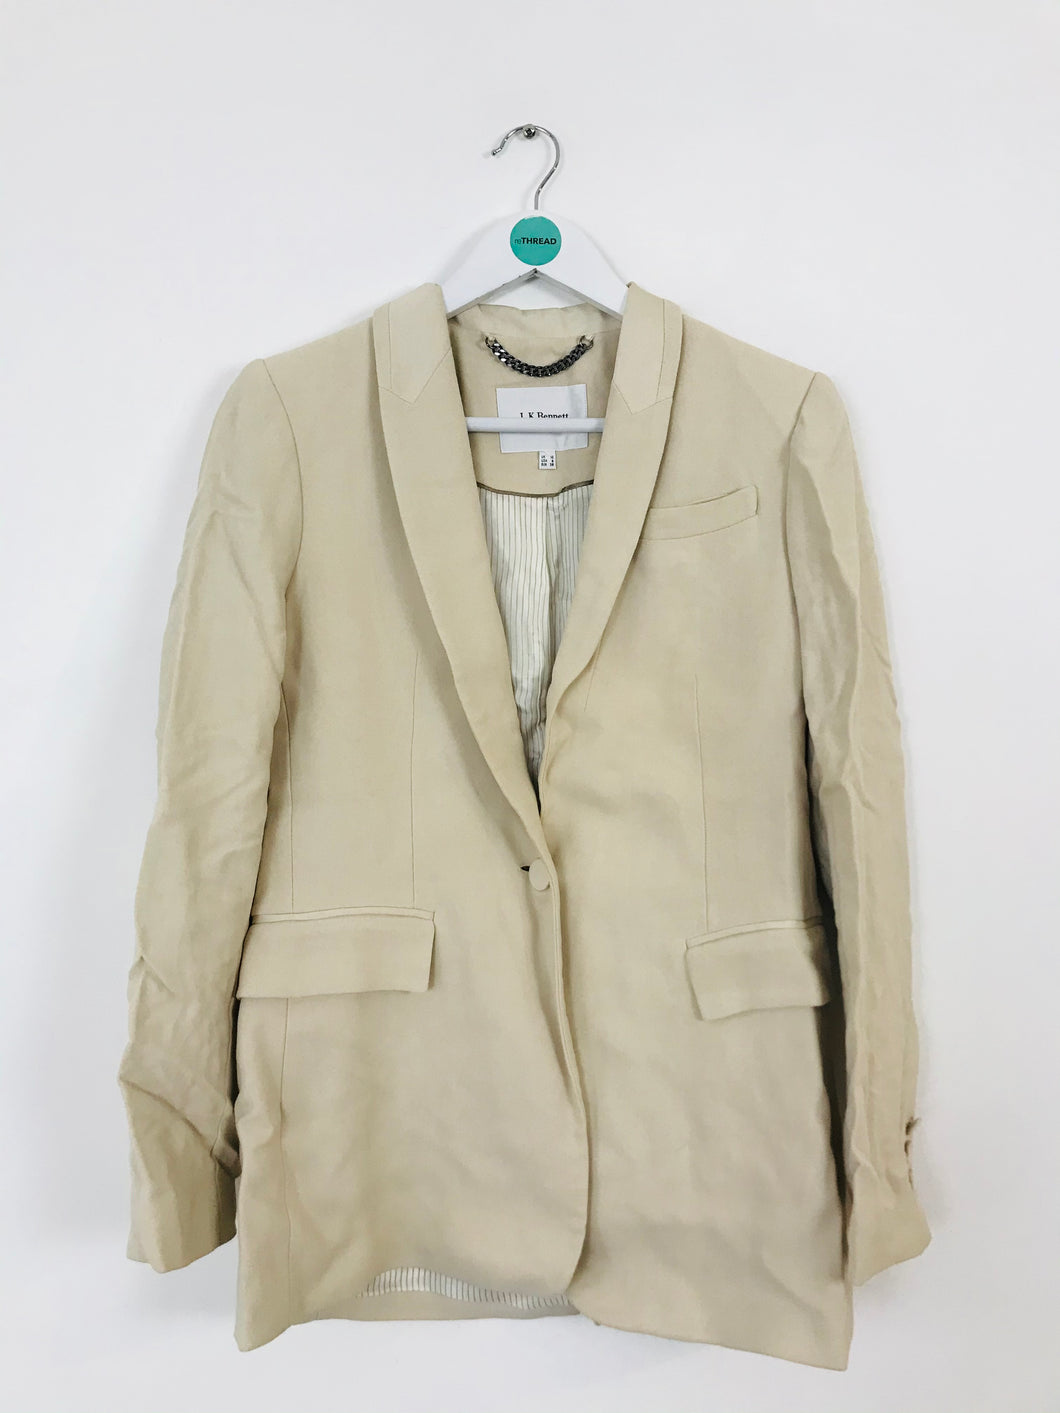 L.K.Bennett Women's Suit Jacket Blazer | UK10 | Cream Beige